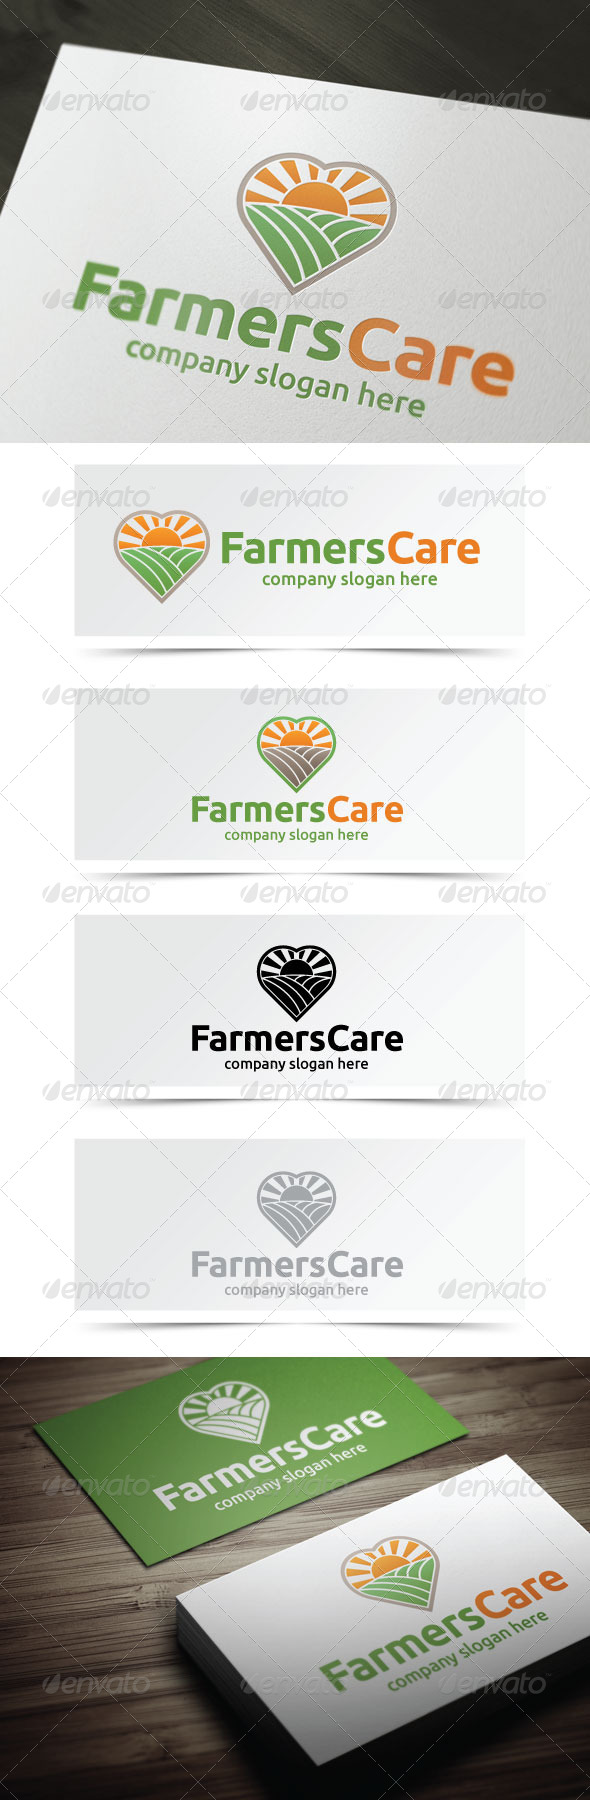 GraphicRiver Farmers Care 5336280